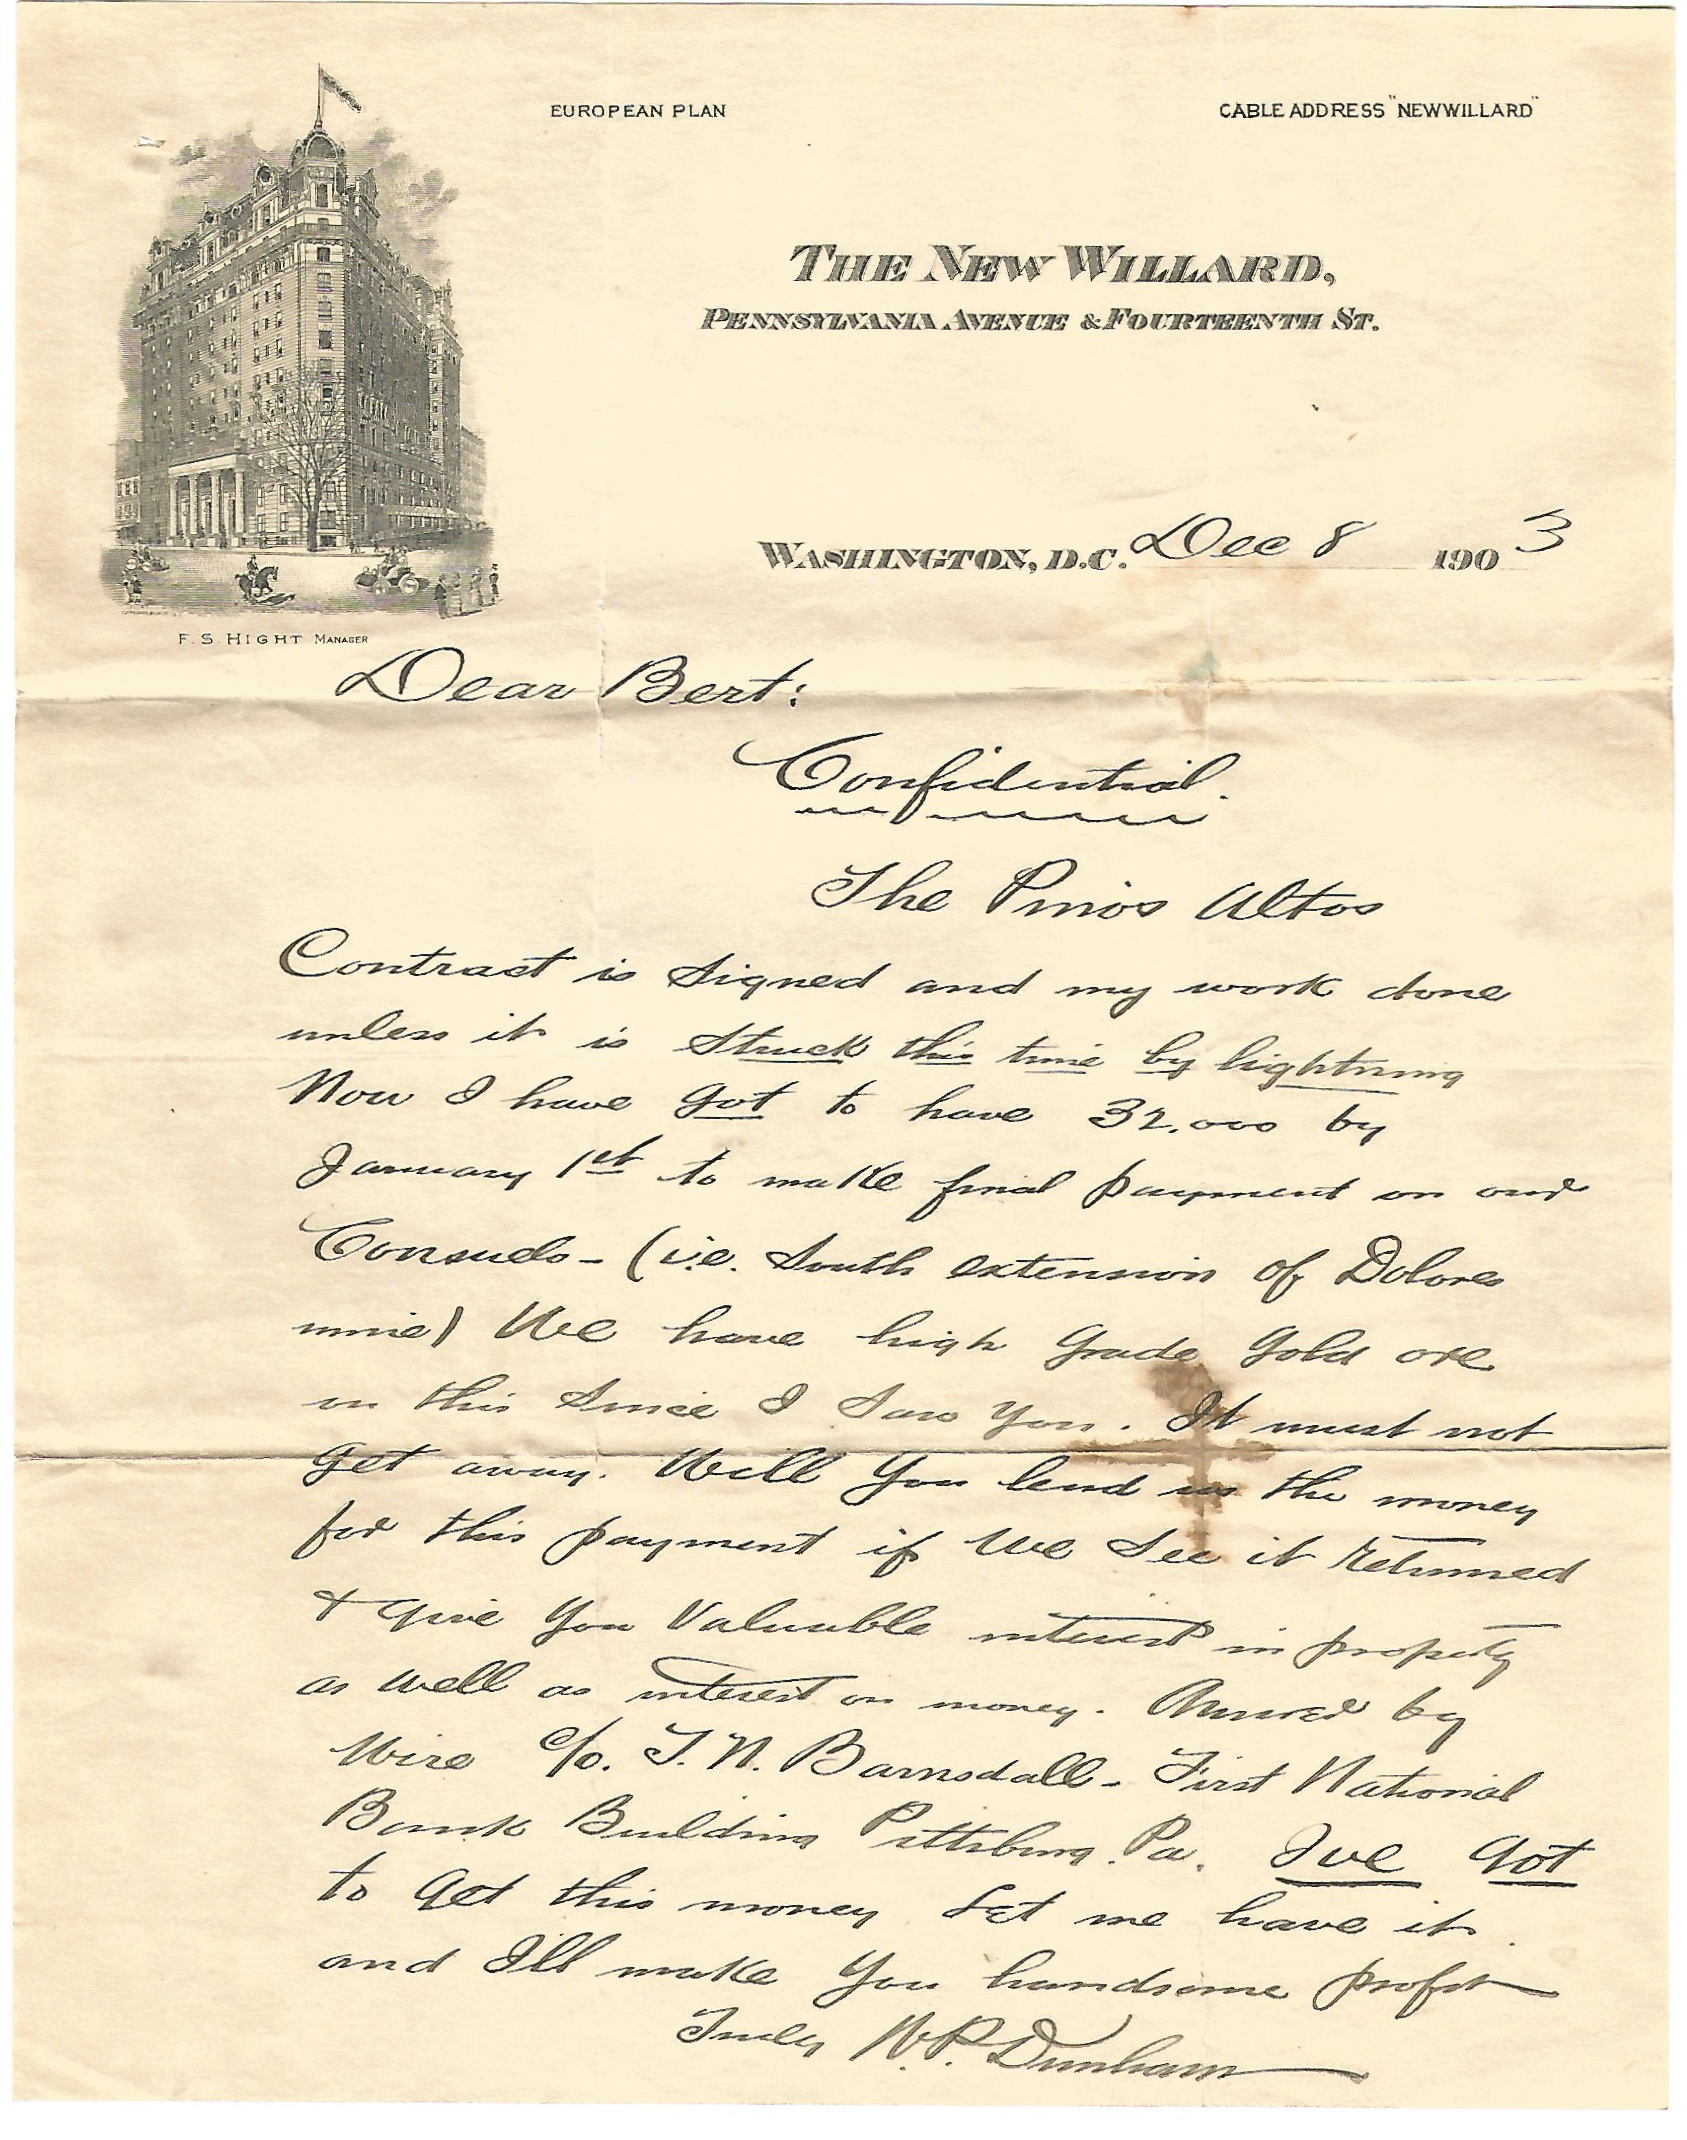 Mining Letter-Telegraph Correspondence with A.E. Carlton of Cripple Creek Colorado 1903